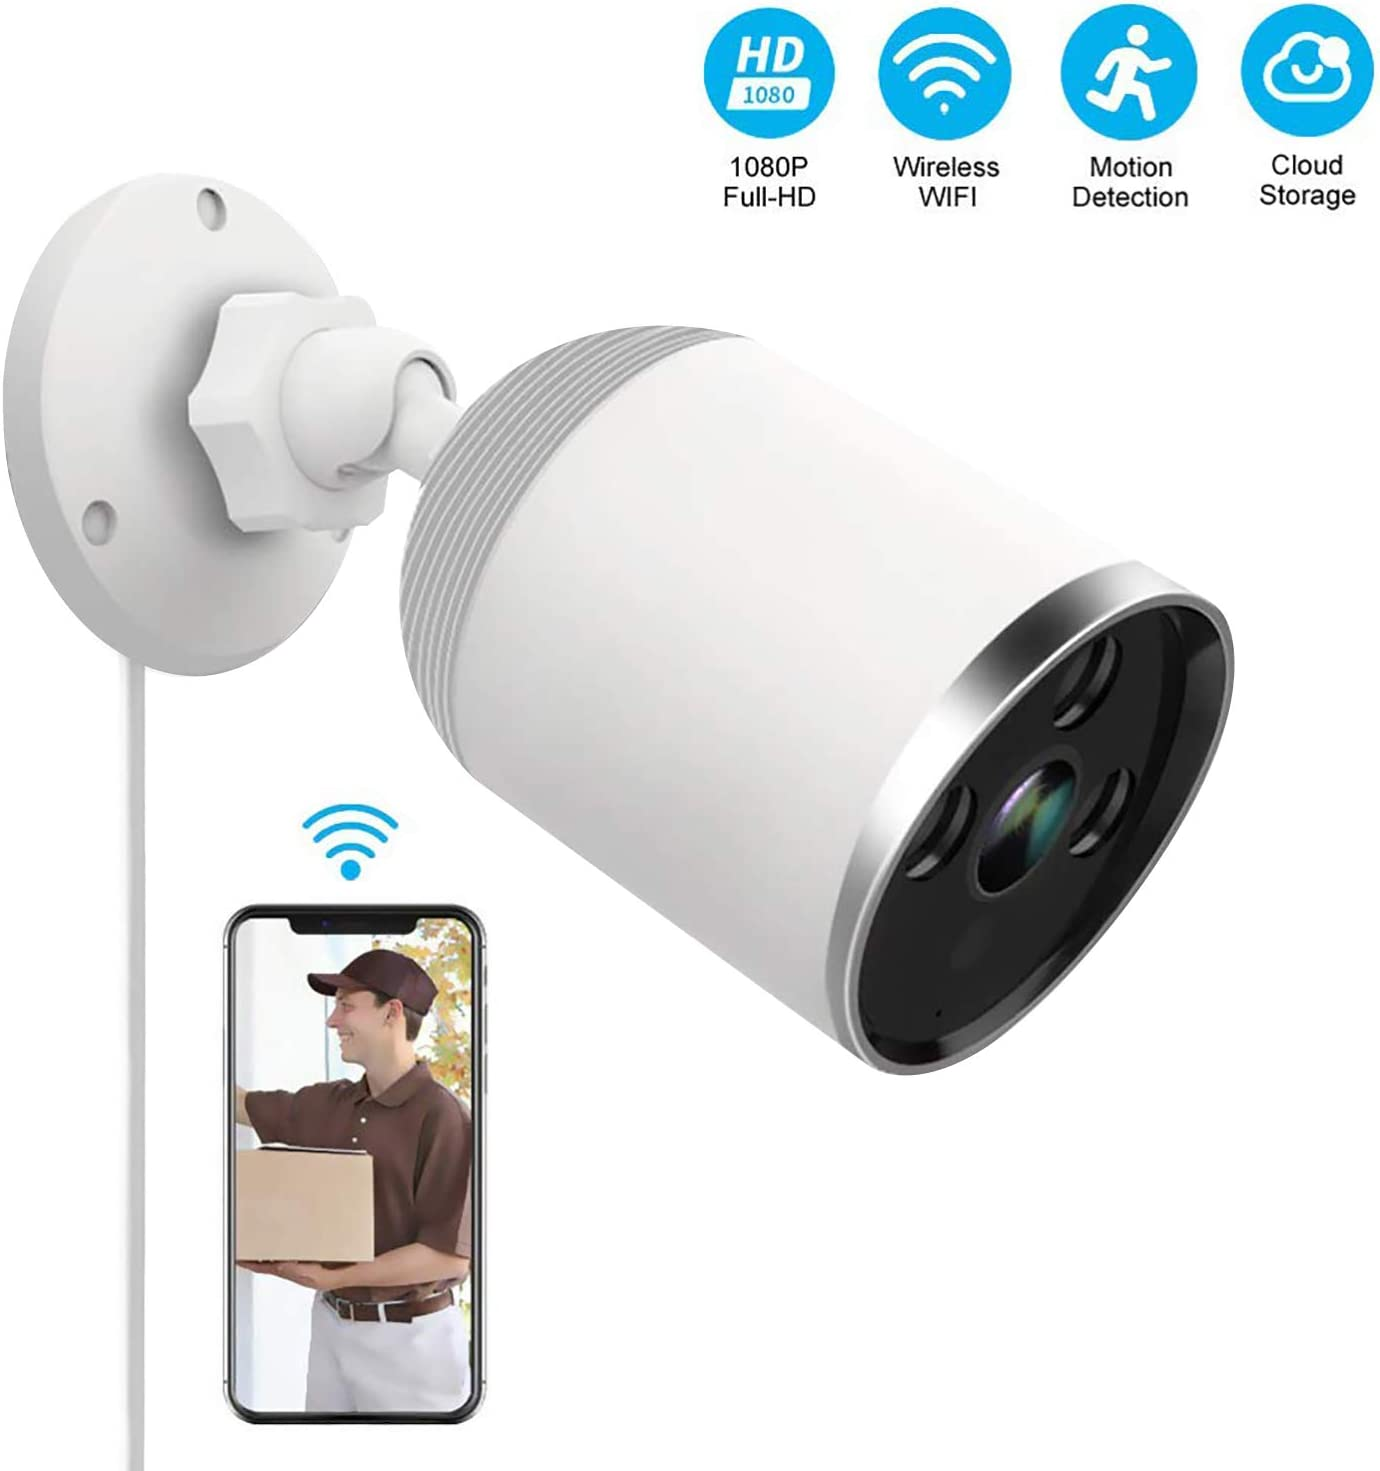 Outdoor and Indoor Home Security Camera, 1080P 2.4G WiFi Night Vision Security Cameras with Two-Way Audio,Cloud Storage, IP66 Waterproof, Motion Detection, Activity Alert, Deterrent Alarm